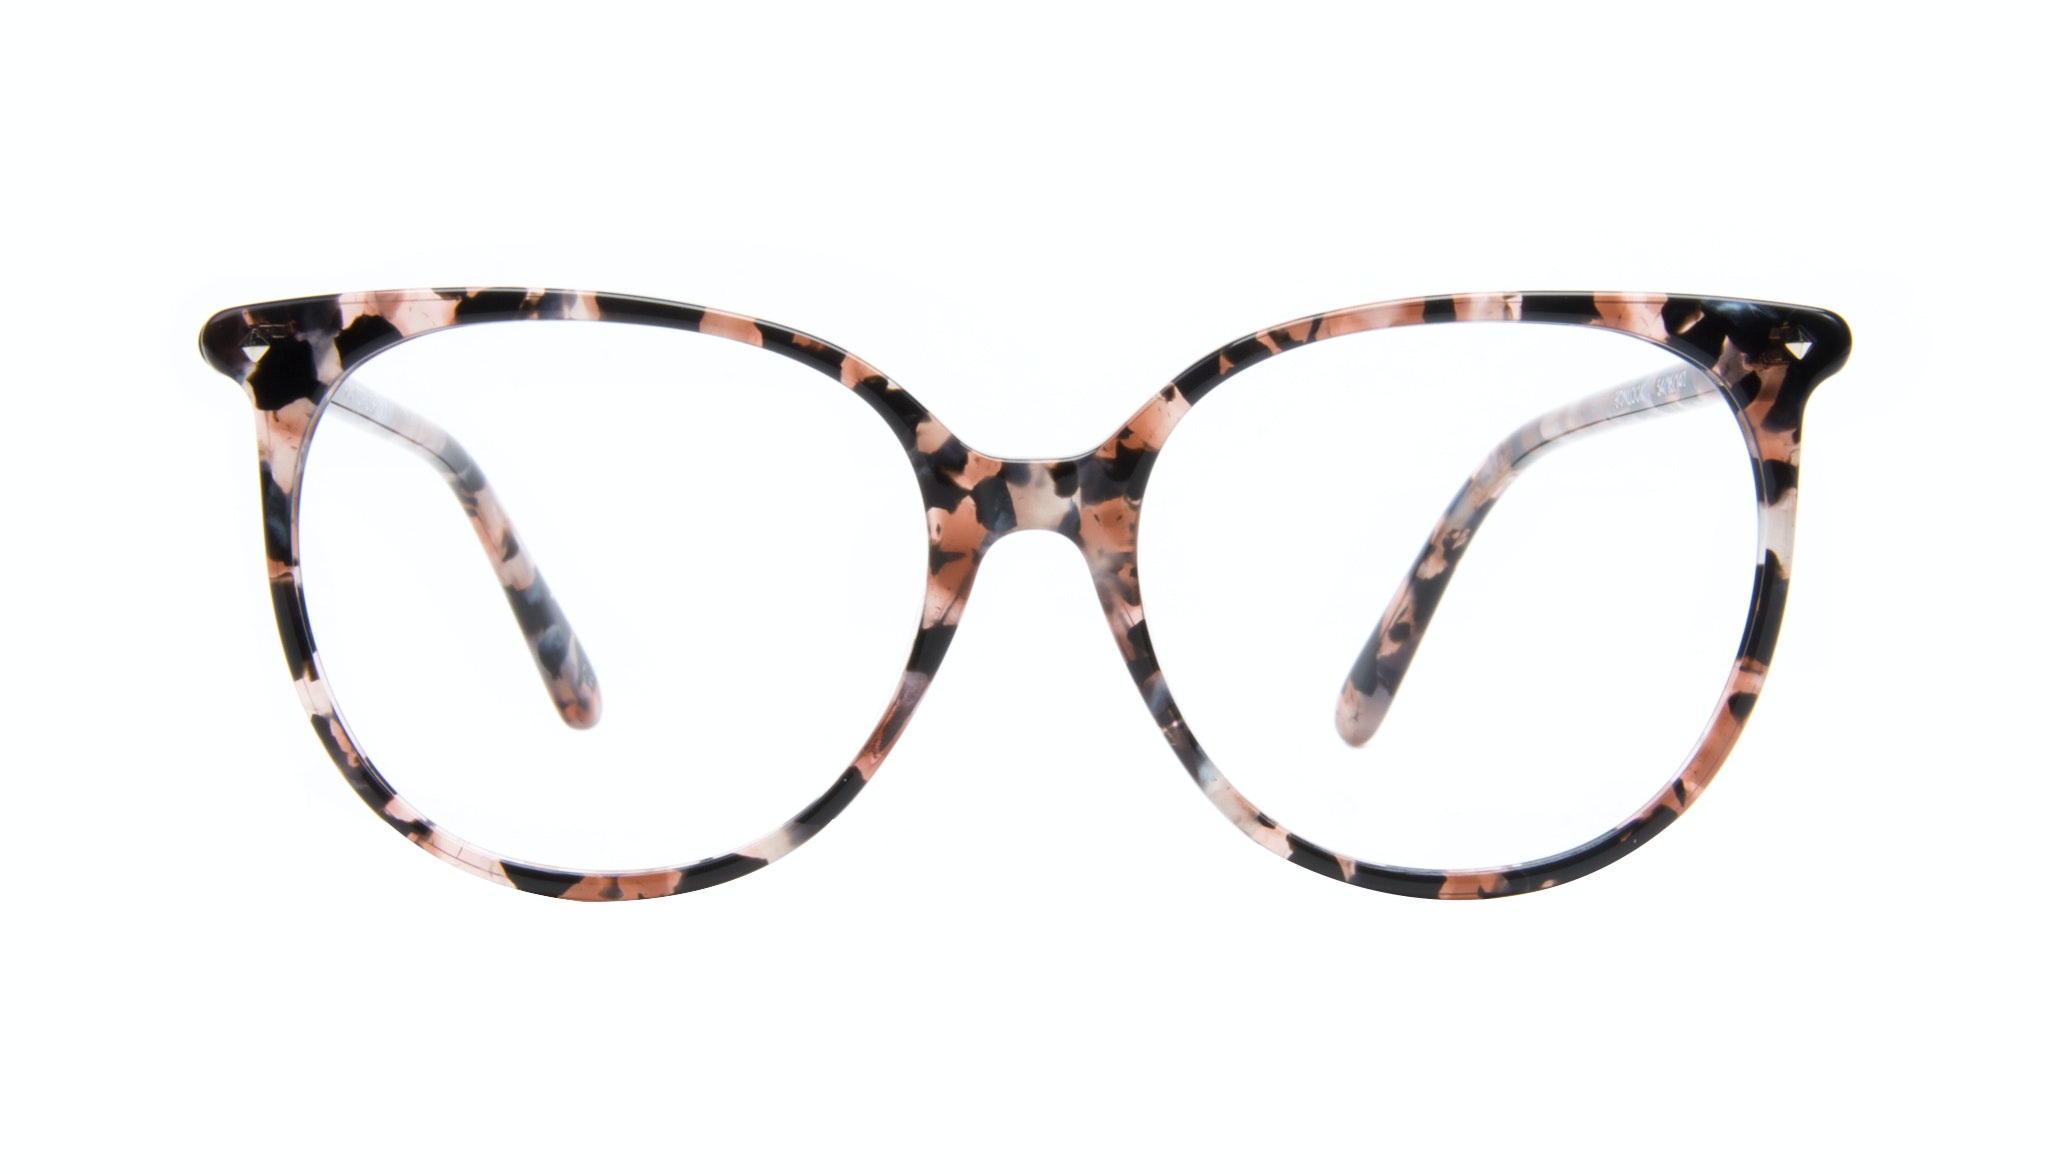 Affordable Fashion Glasses Cat Eye Square Eyeglasses Women Area Pink Tortoise